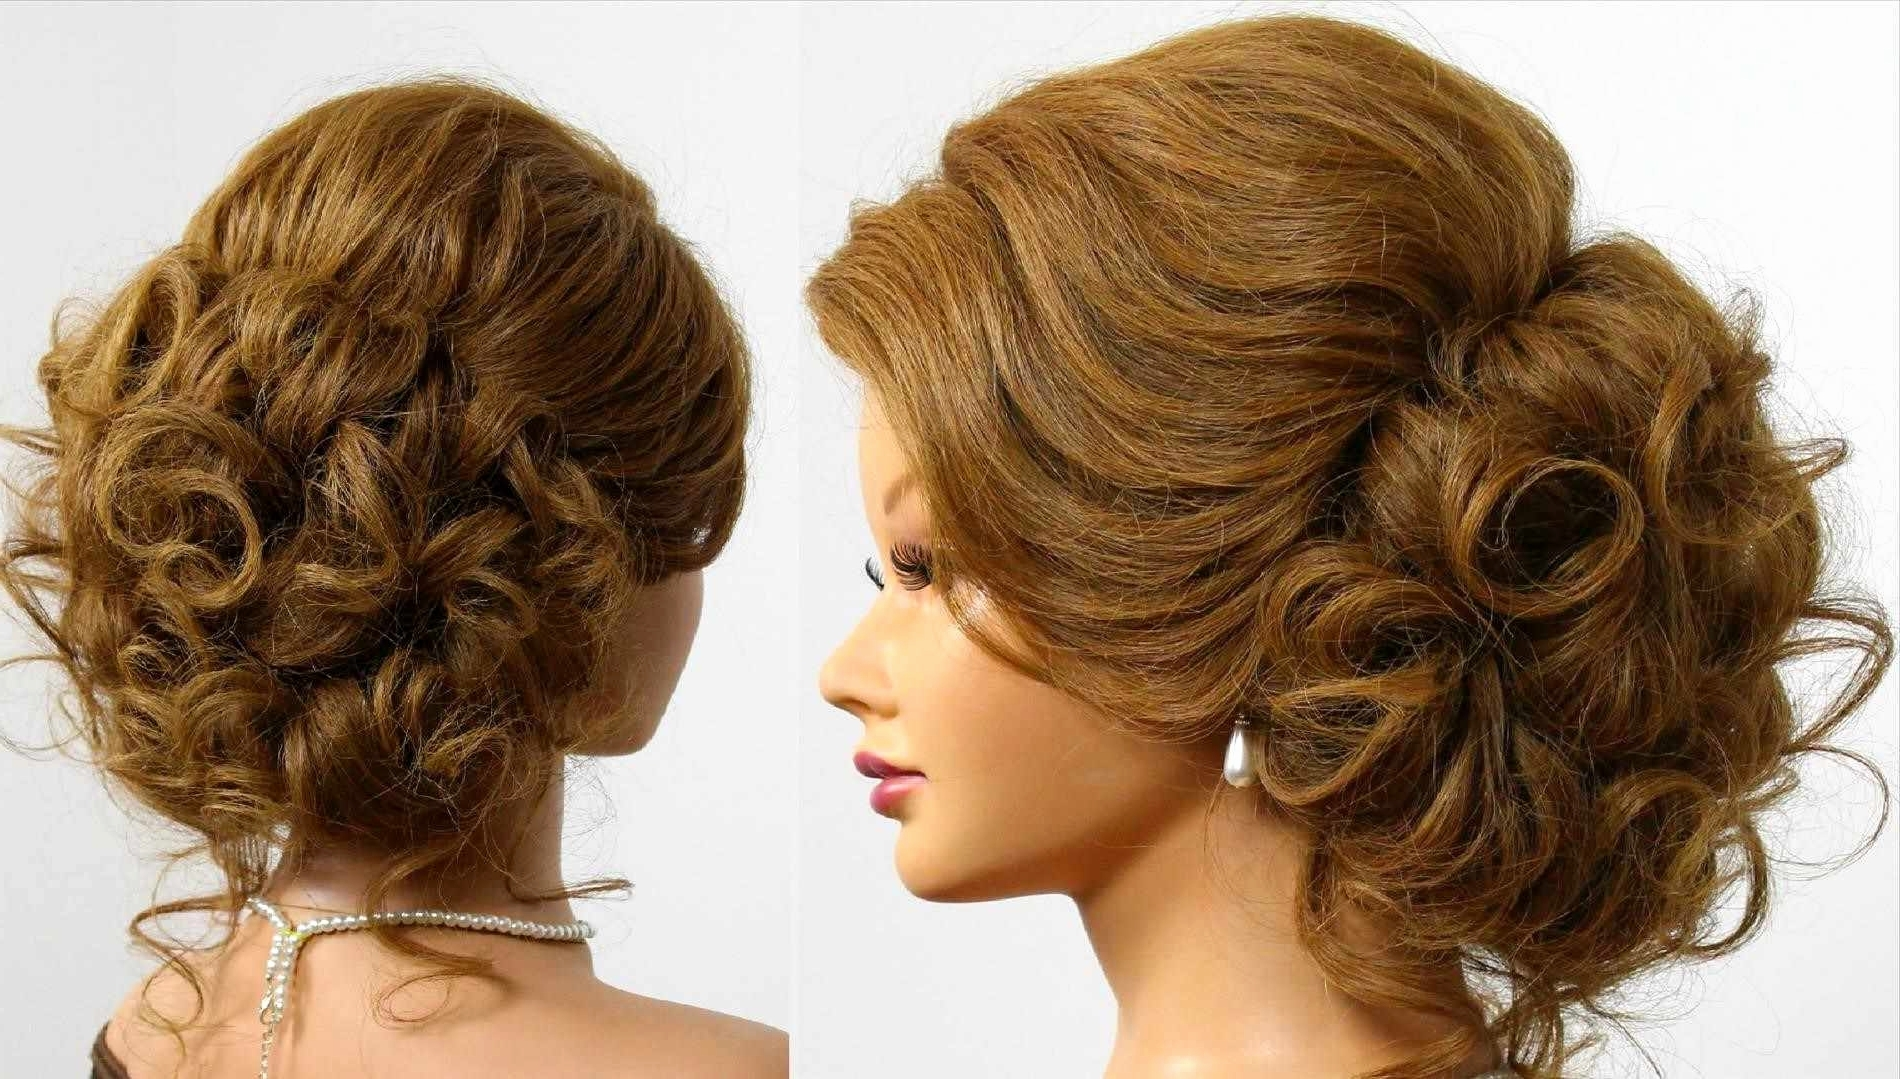 15 Wedding Hairstyles For Long Hair That Steal The Show: 15 Ideas Of Half Updos For Mother Of The Bride